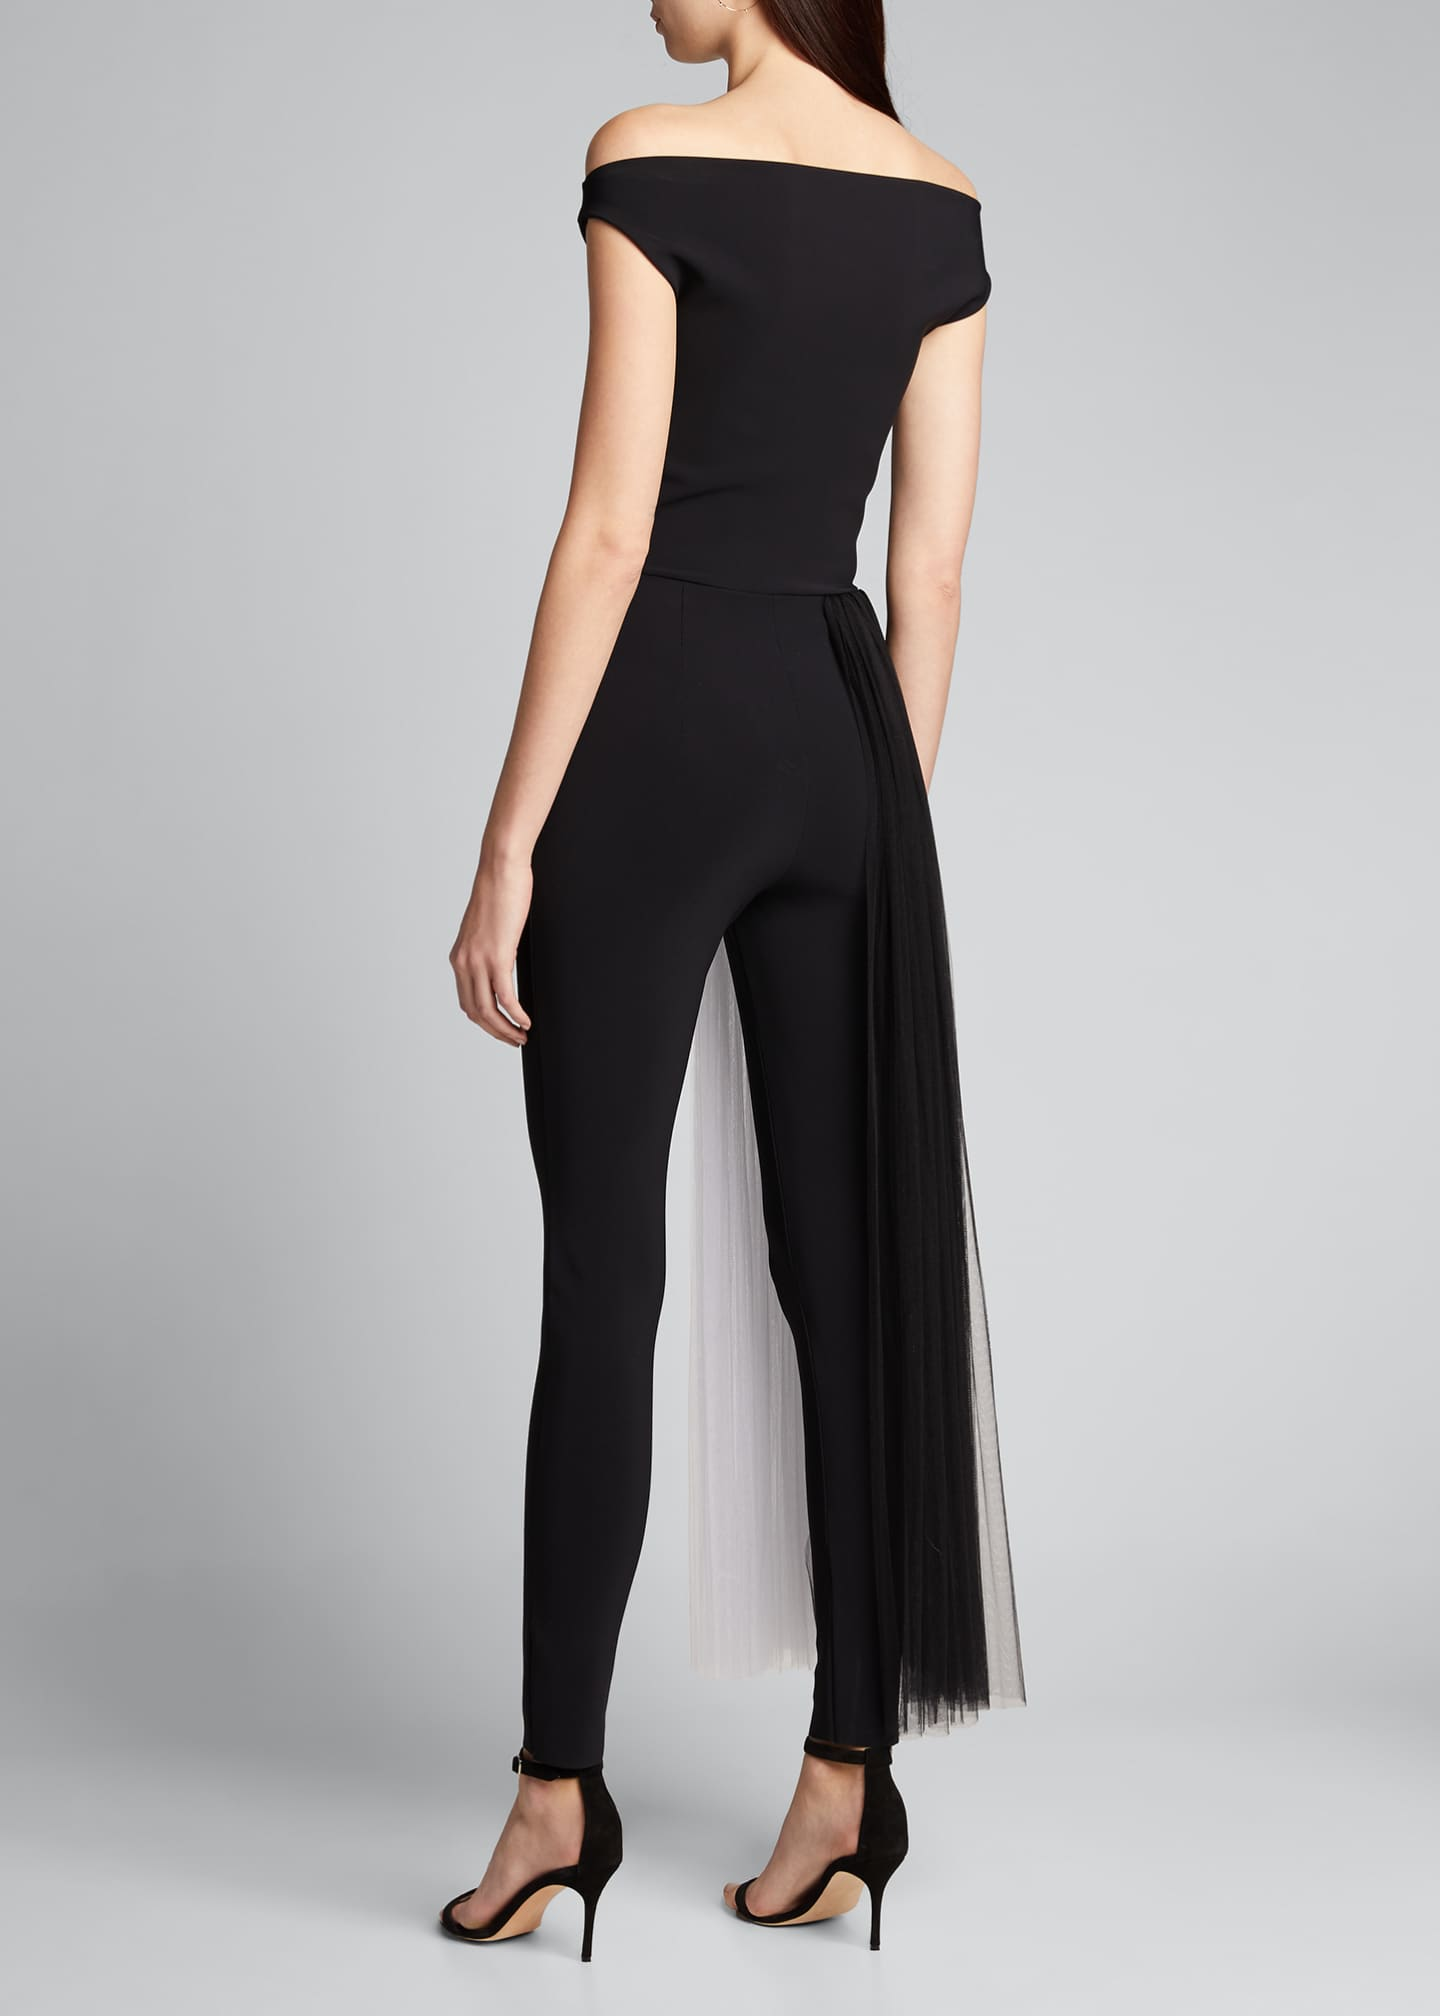 Image 2 of 5: Mar Two-Tone Off-the-Shoulder Jumpsuit w/ Illusion Waist Train